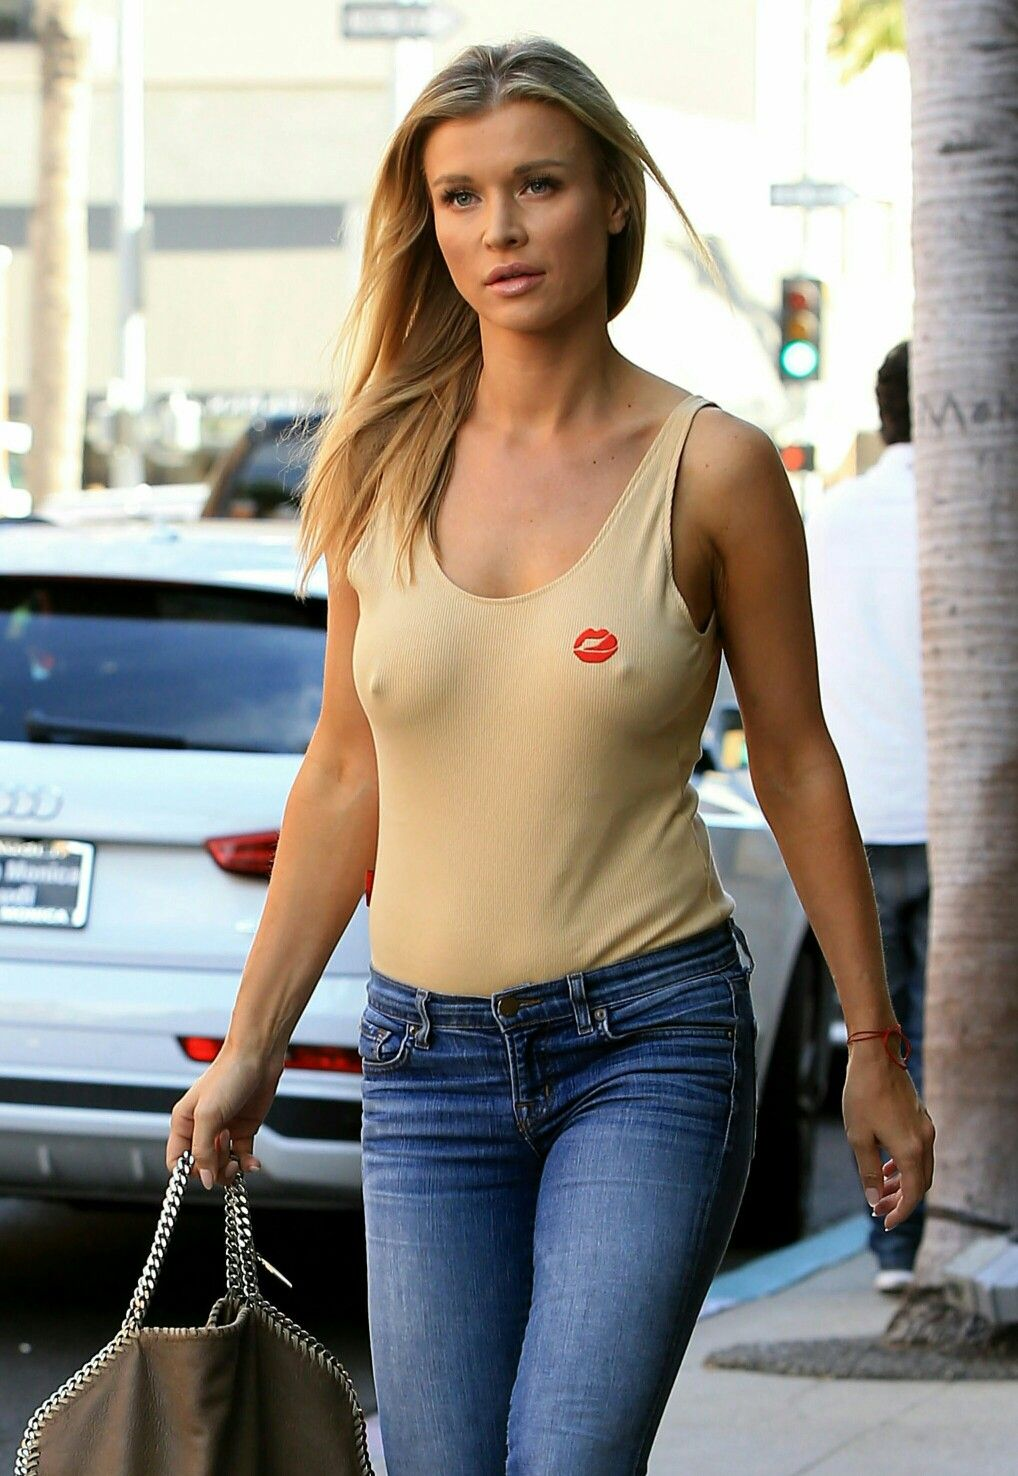 Pokies of joanna krupa new images